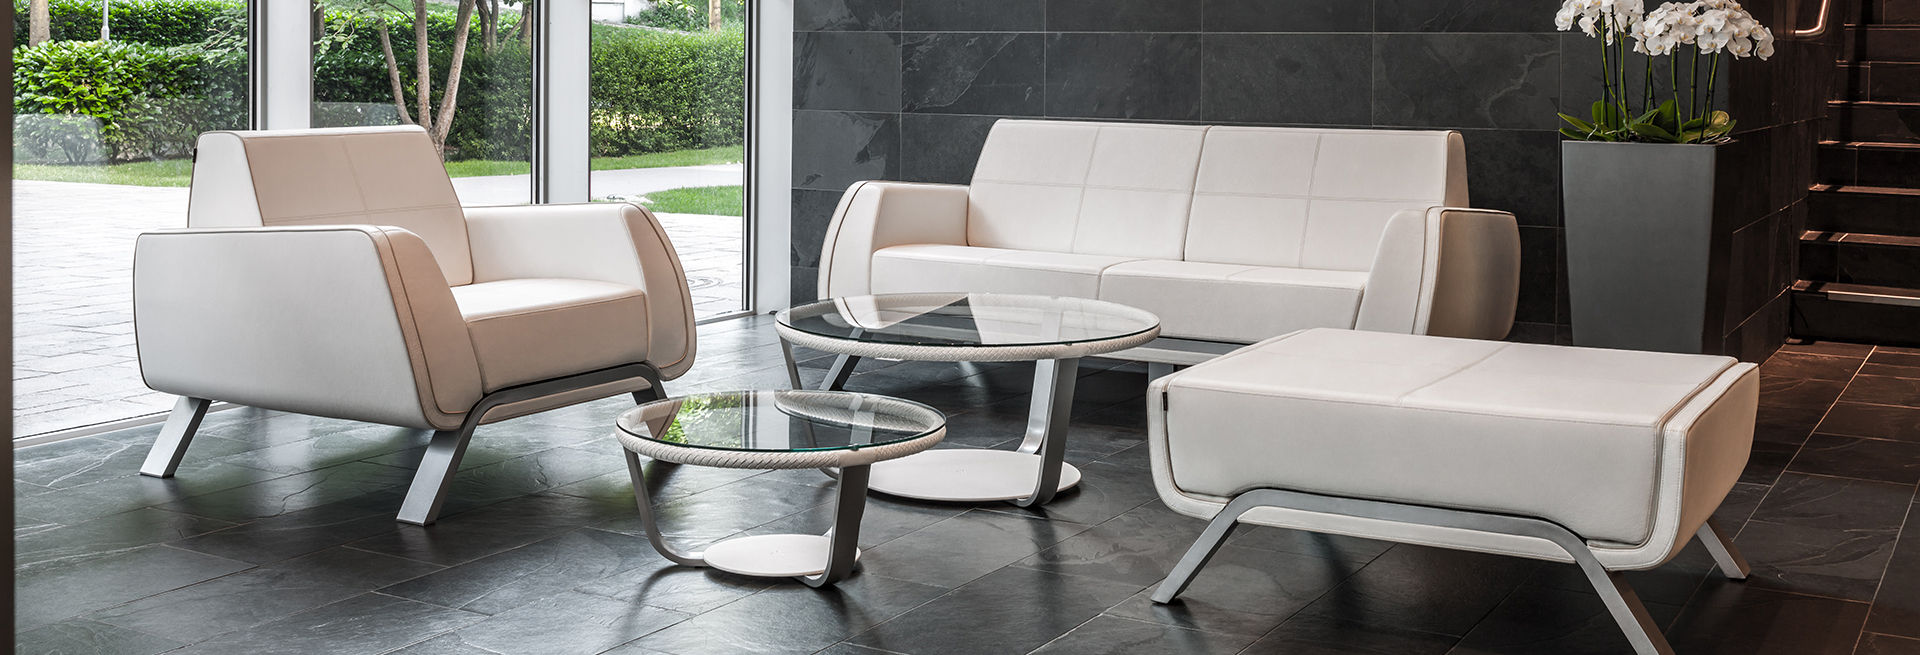 divine collection furniture. Lounge Tables : Boxmark XTREME Collection \u2013 Exclusive Leather Furniture For Interior And Exterior. Divine R